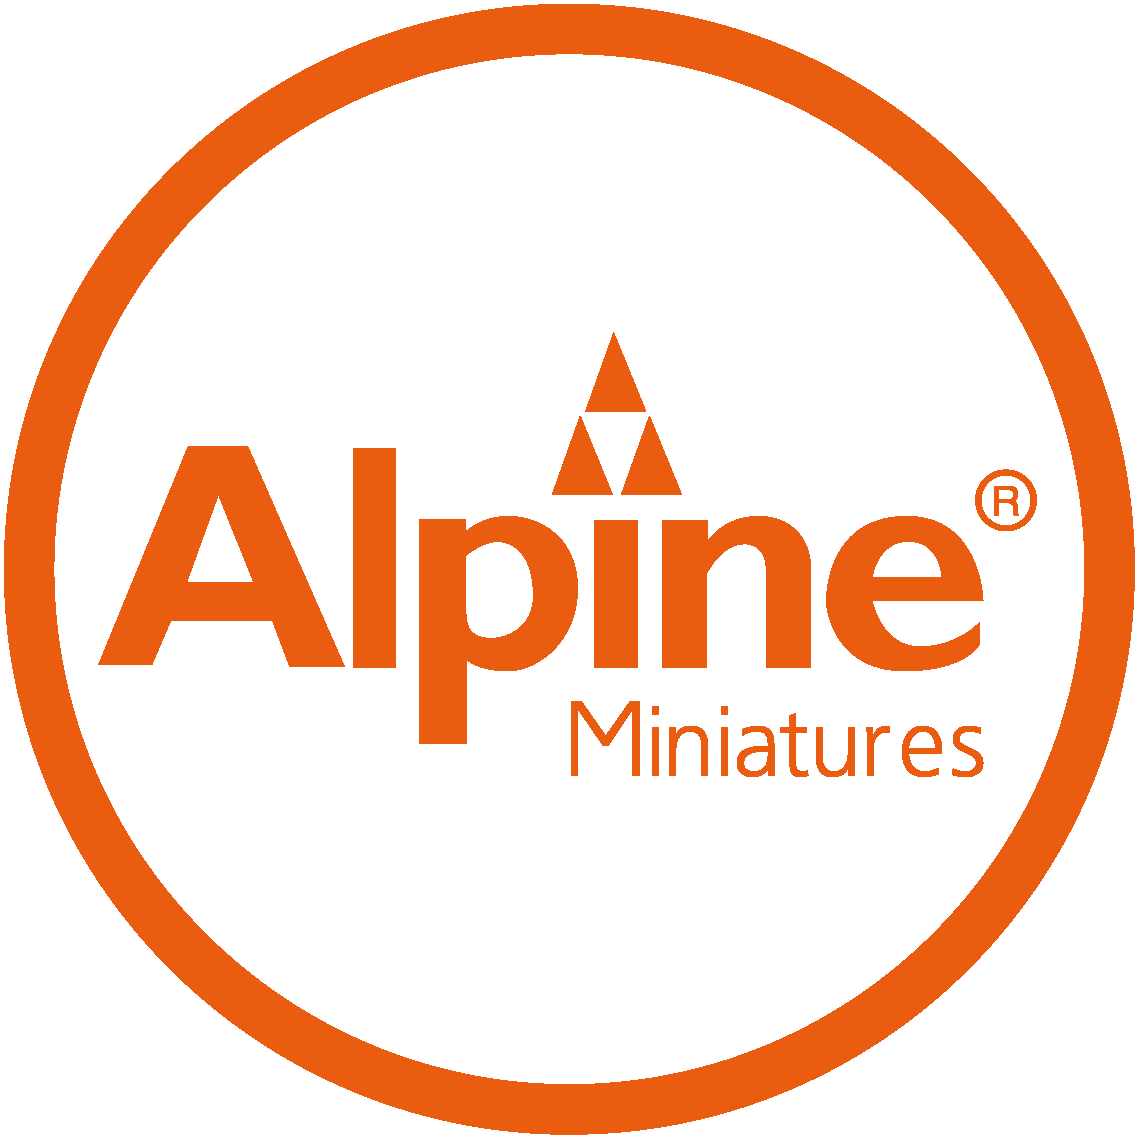 Alpine-Miniatures